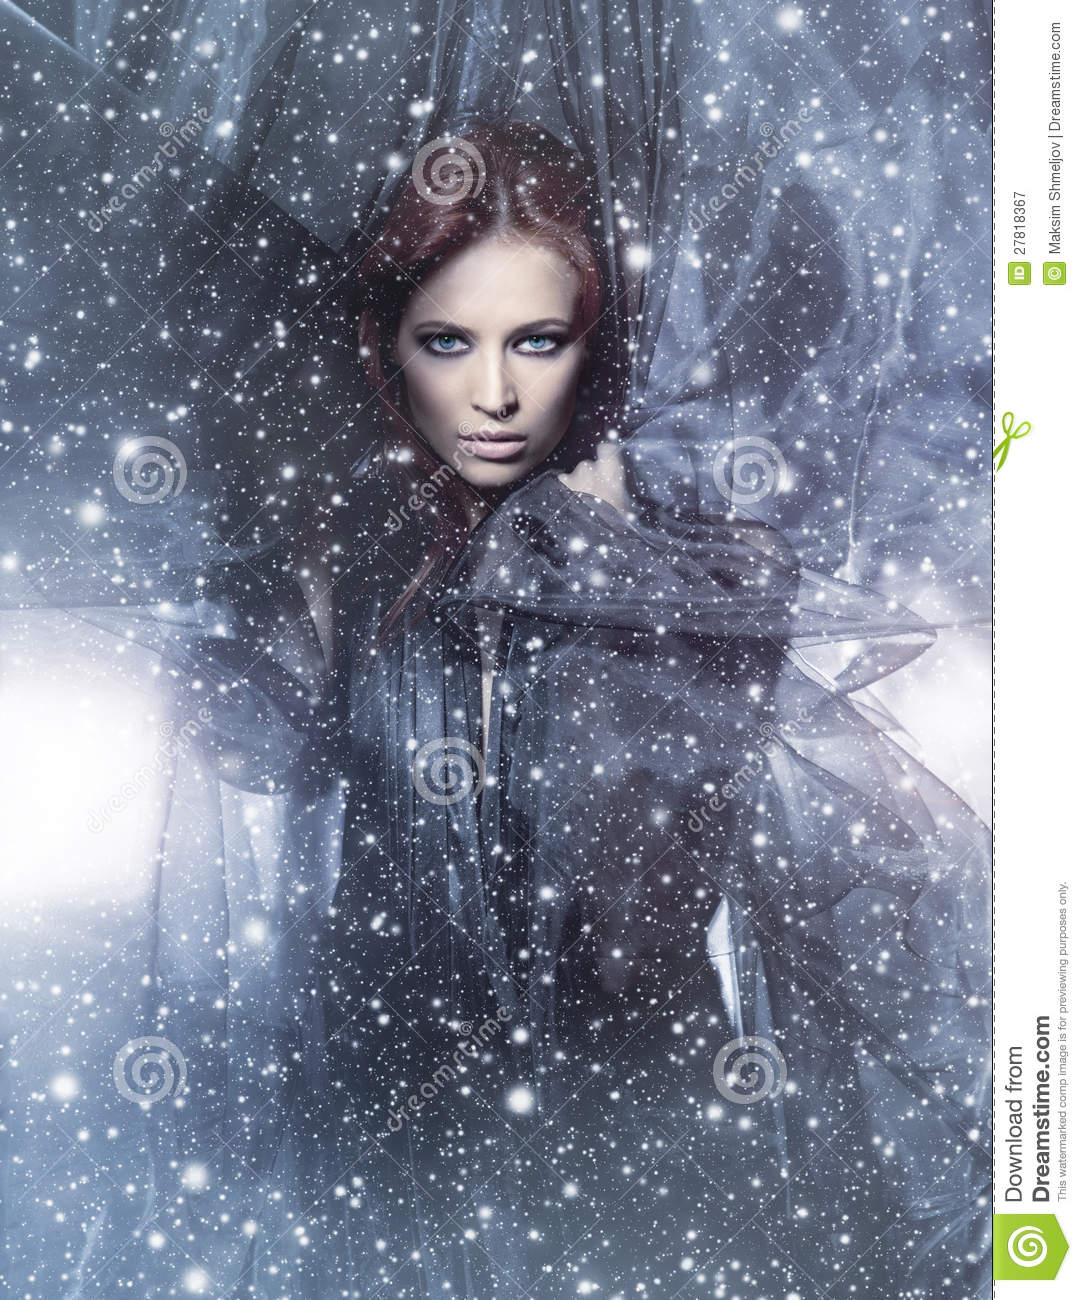 A young redhead woman on a snowy background